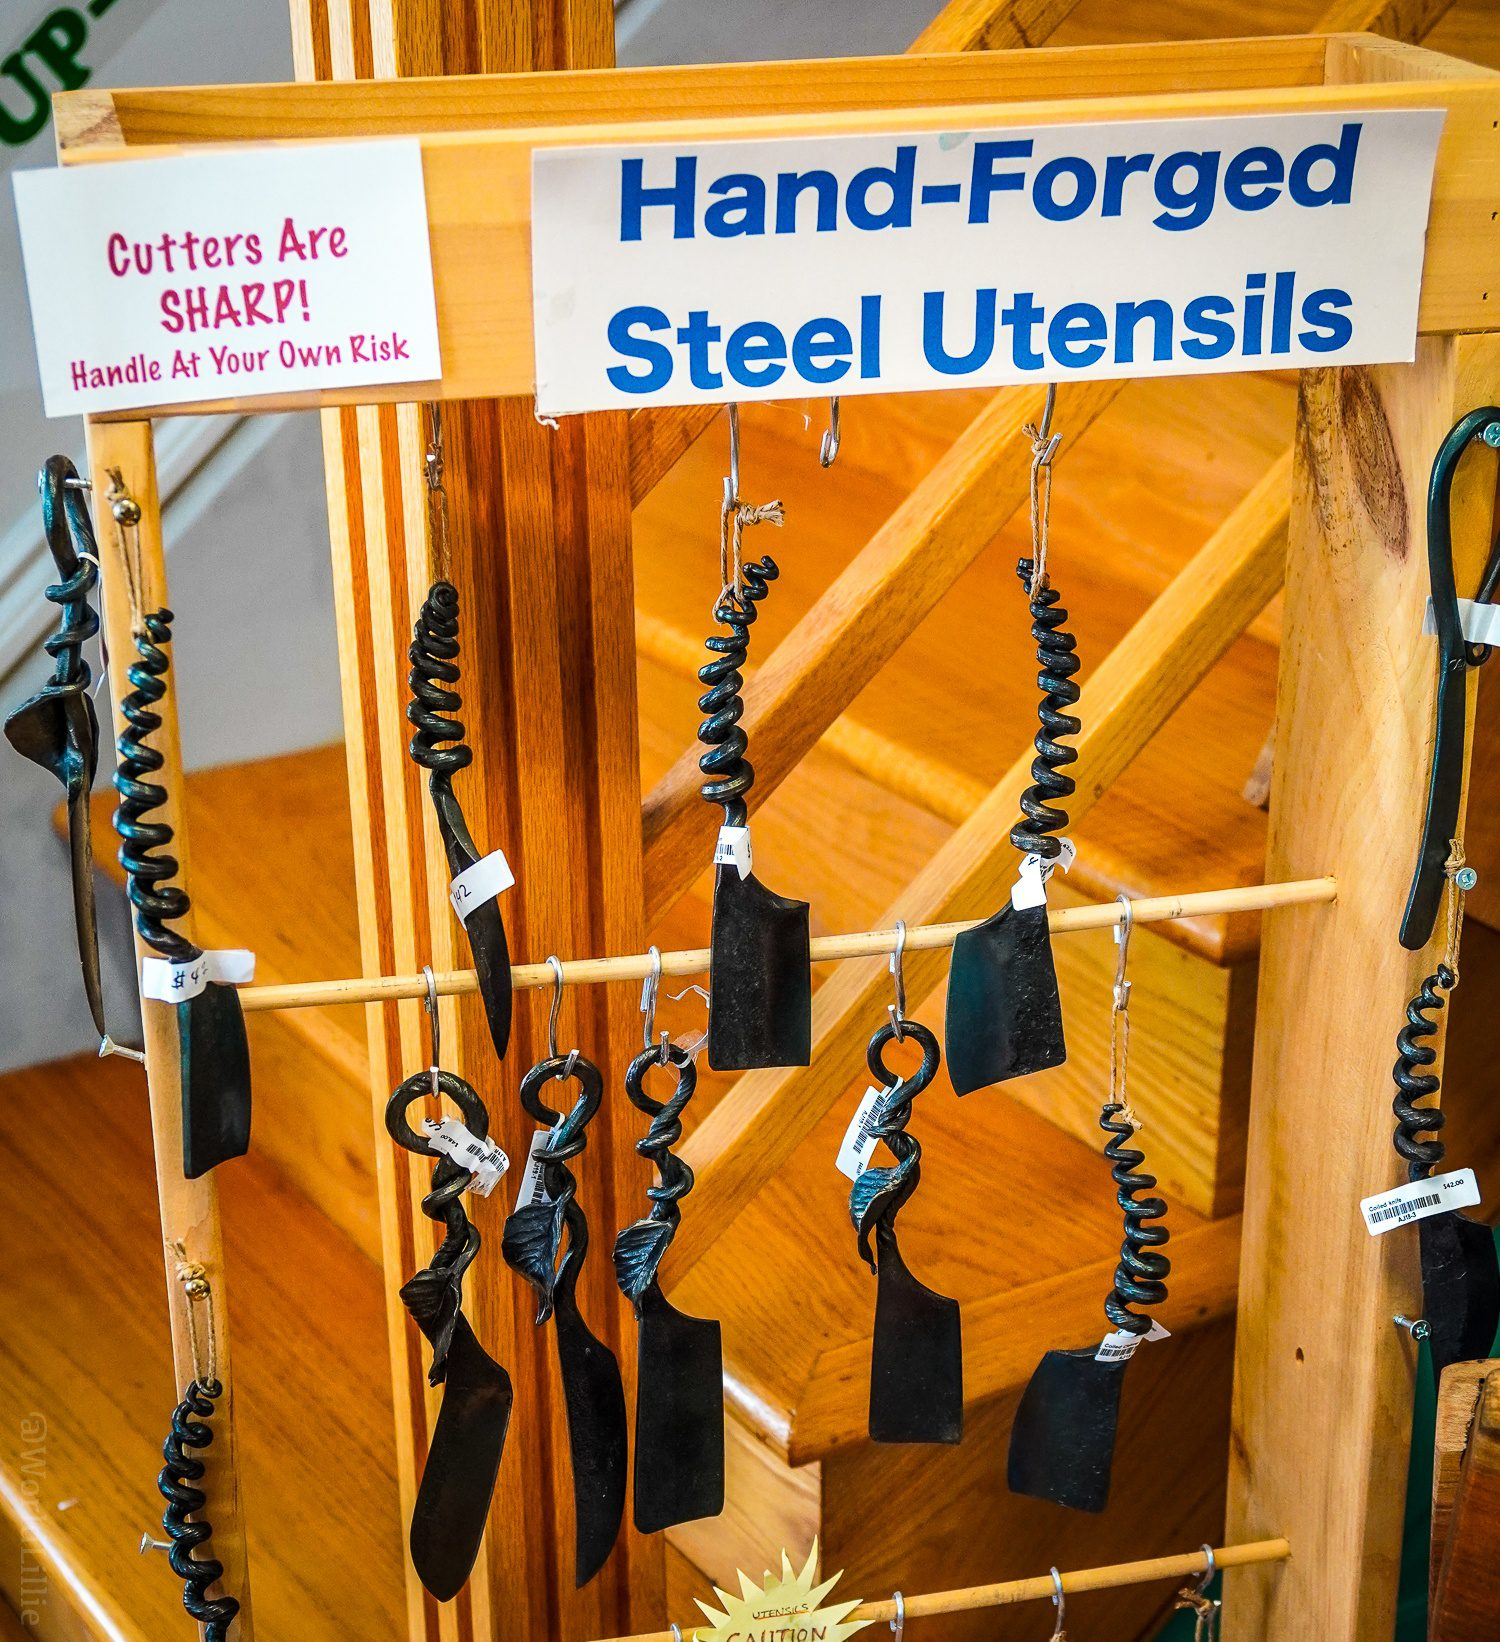 These hand-forged steel utensils are AWESOME.